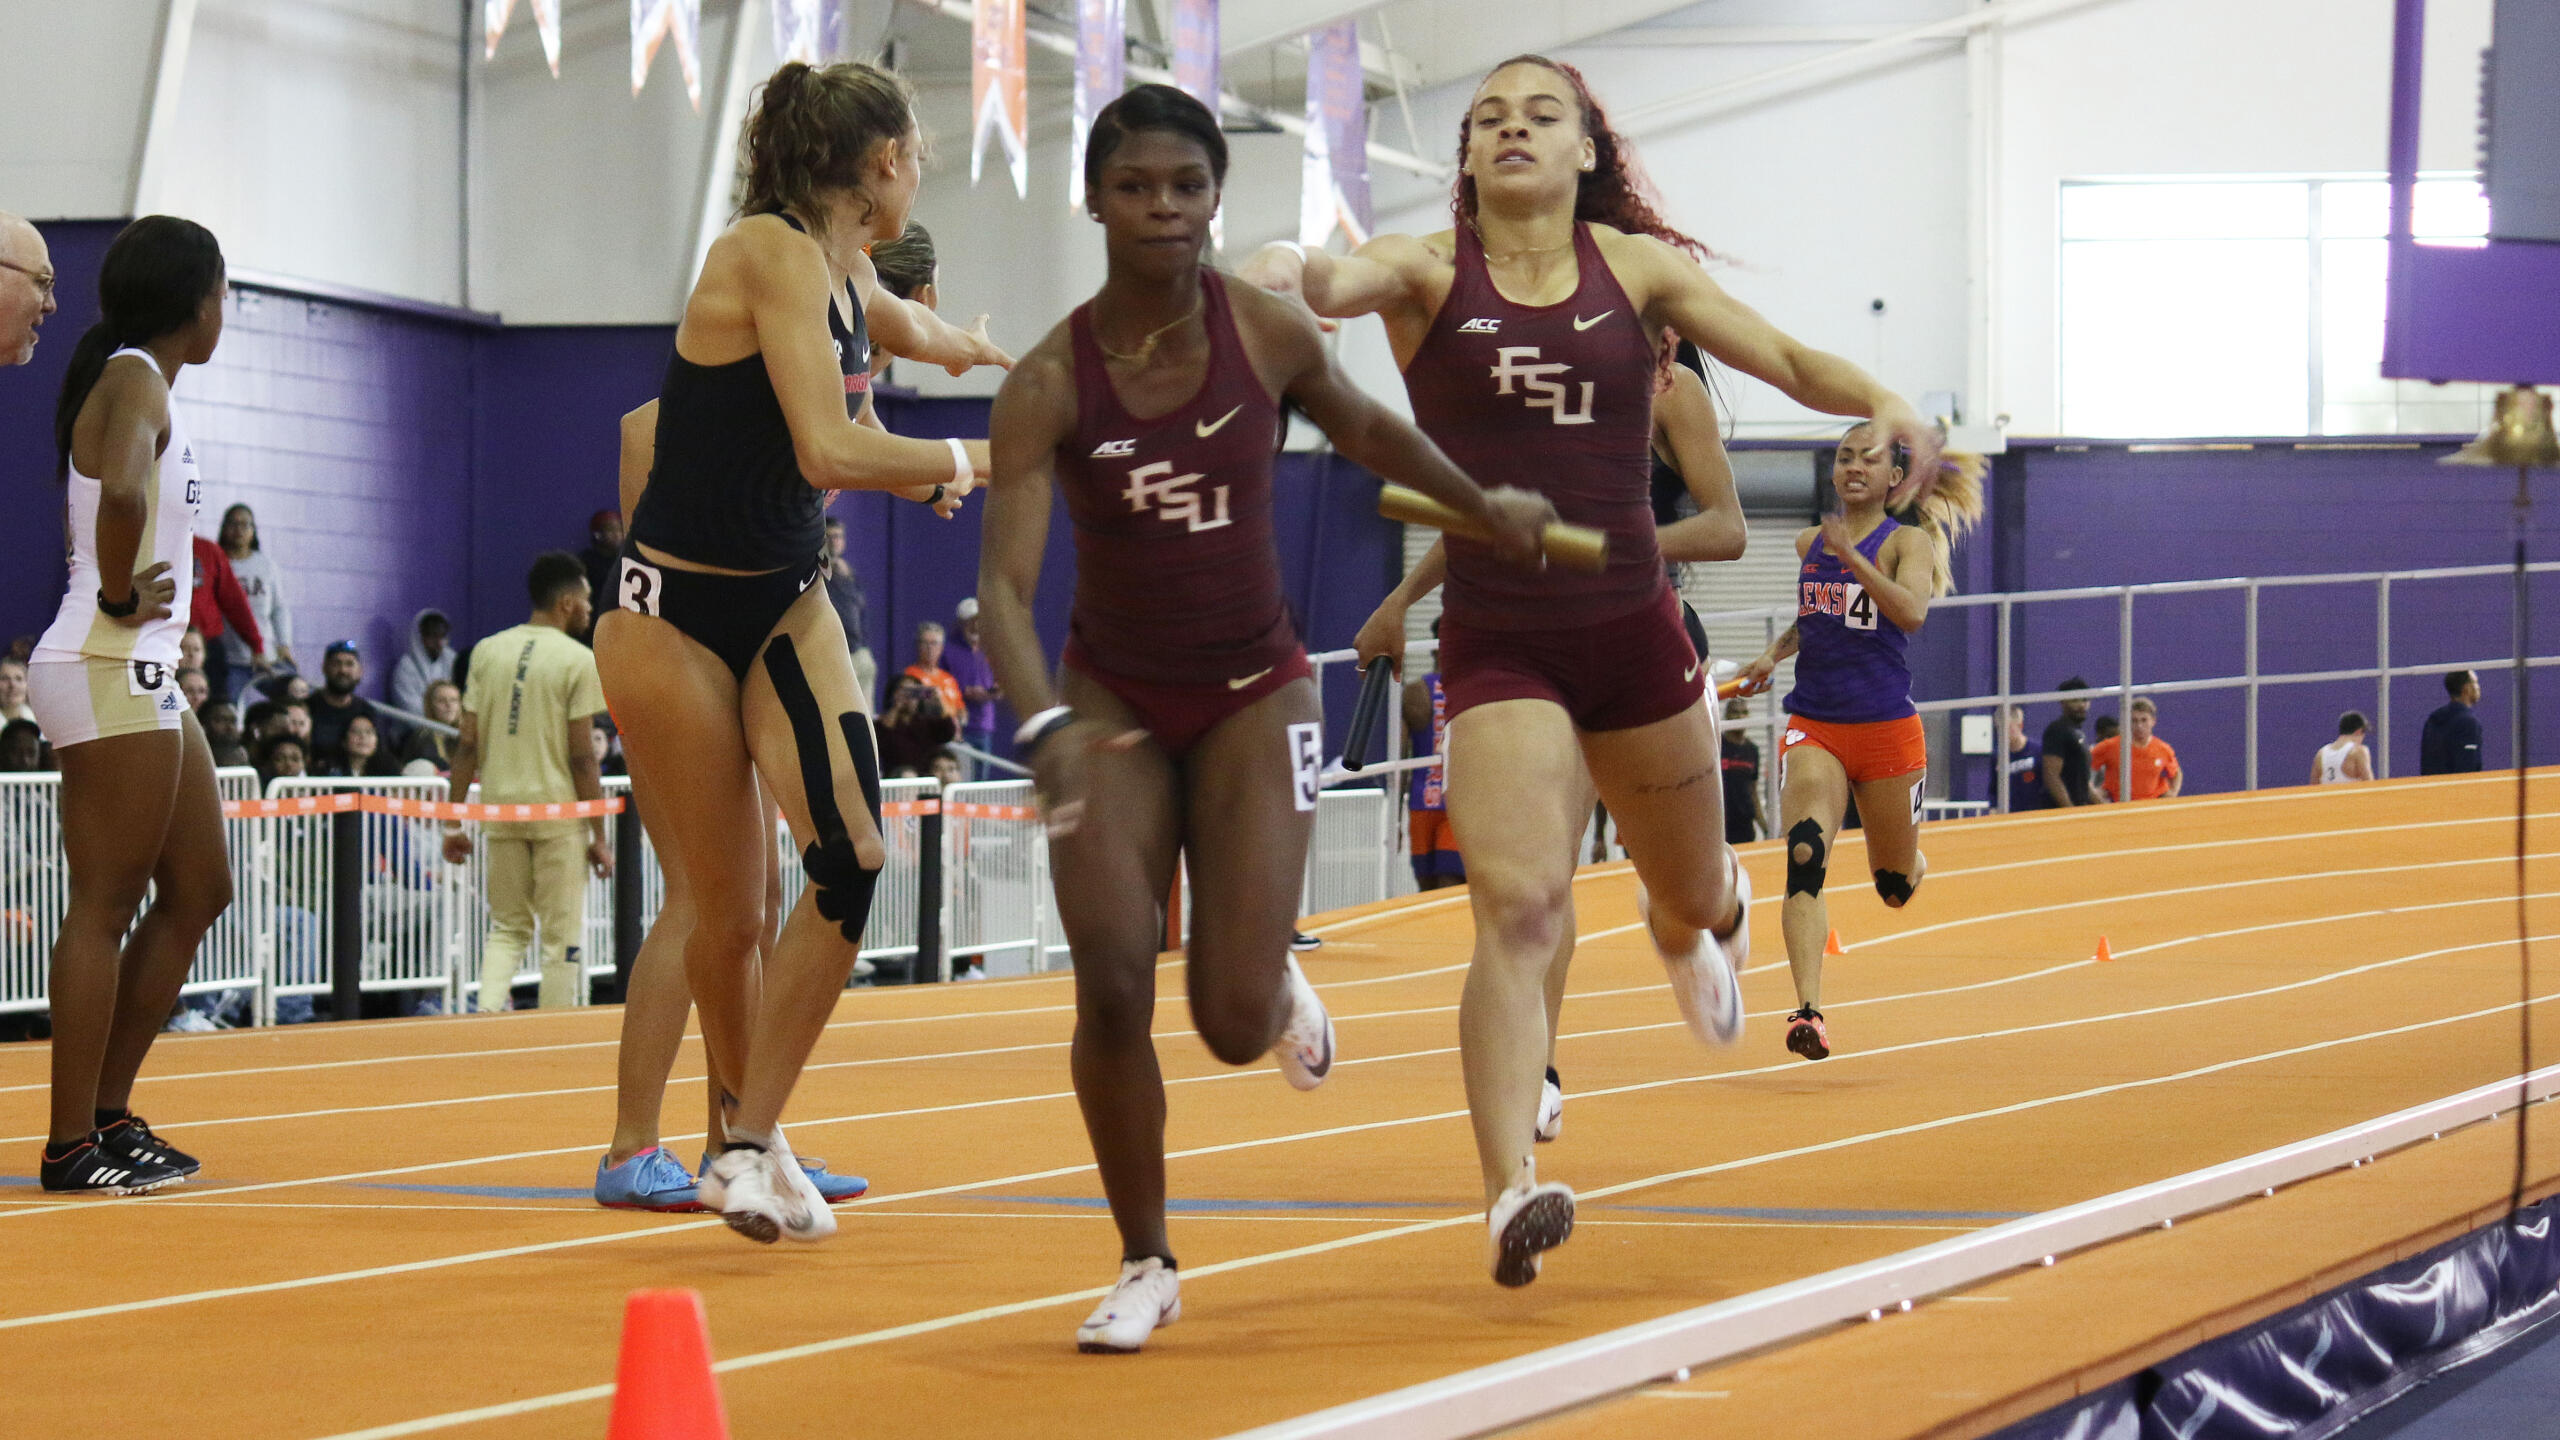 Parker Soars Into NCAA Picture On Final Day